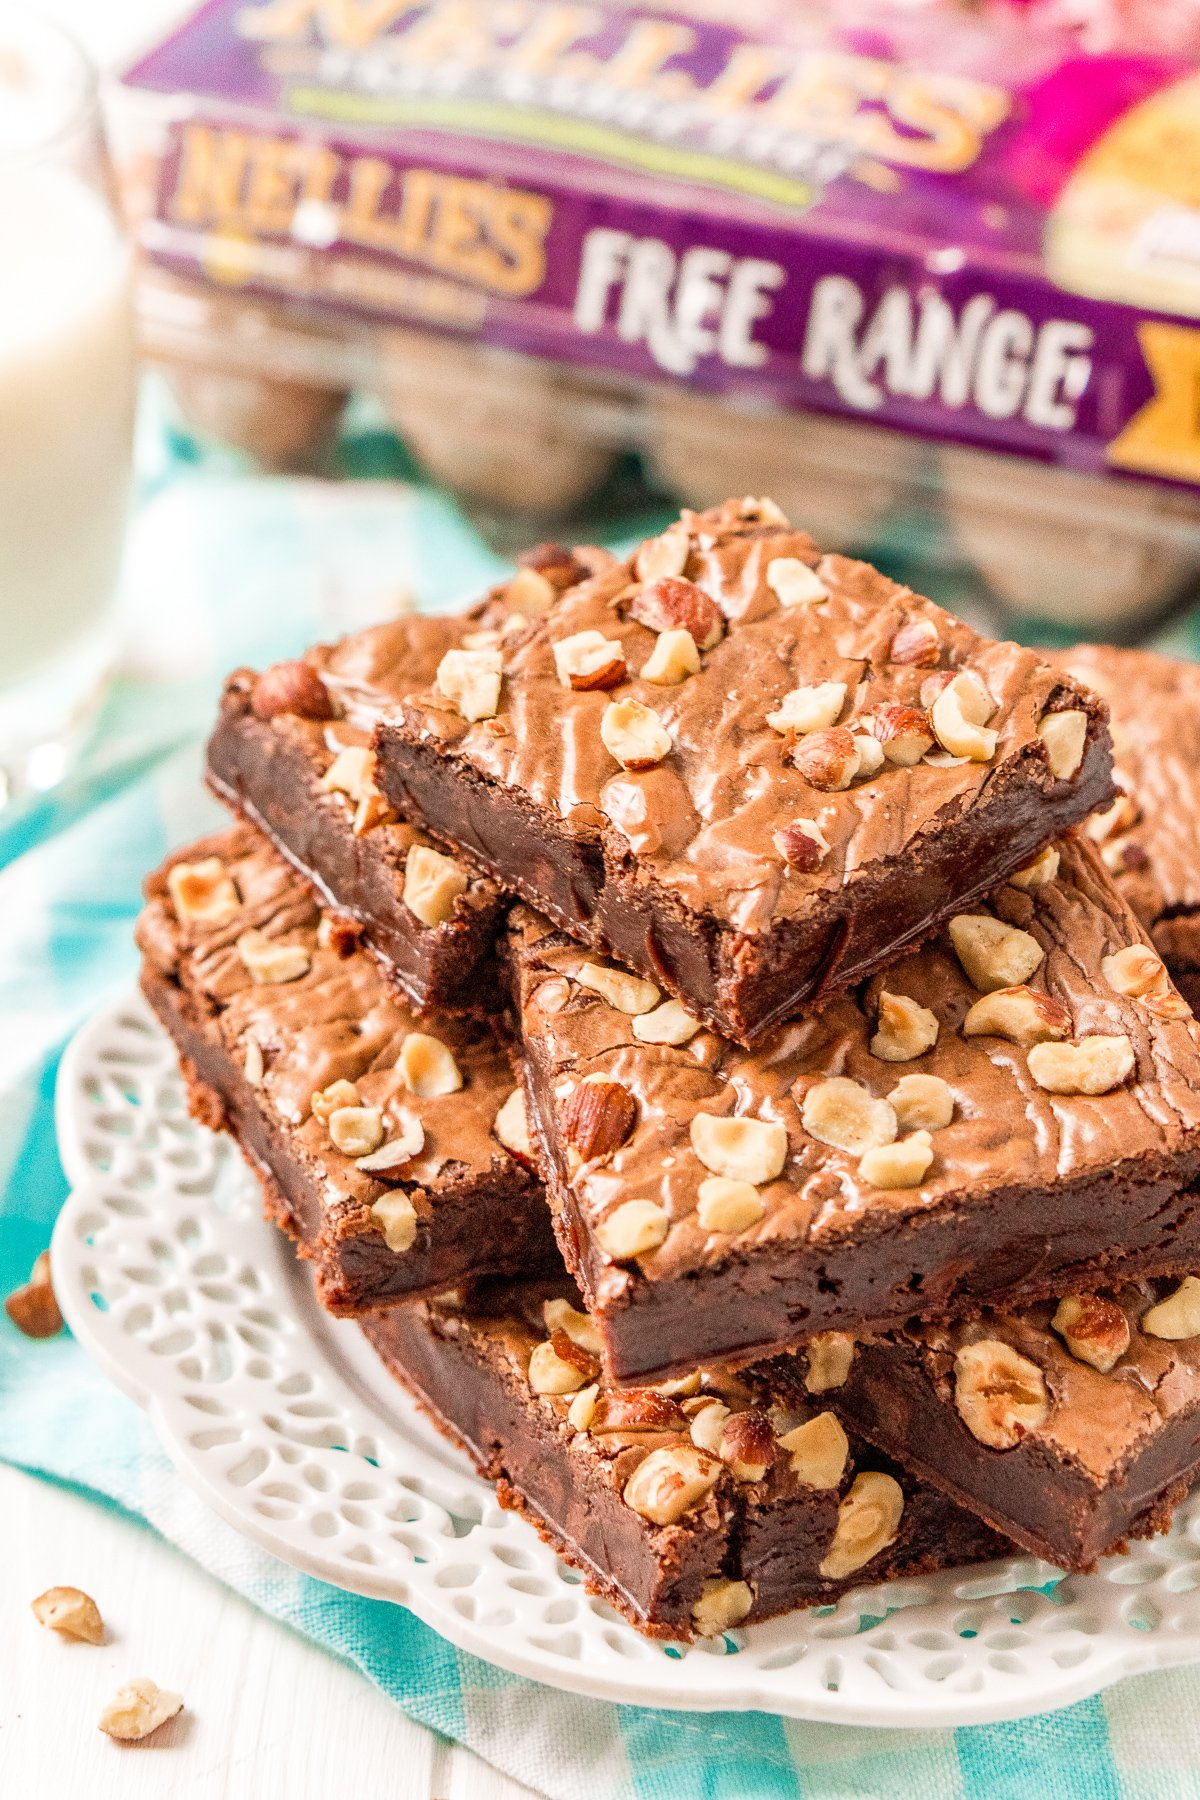 Brownies with hazelnuts stacked on a white plate with a carton of eggs in the background.